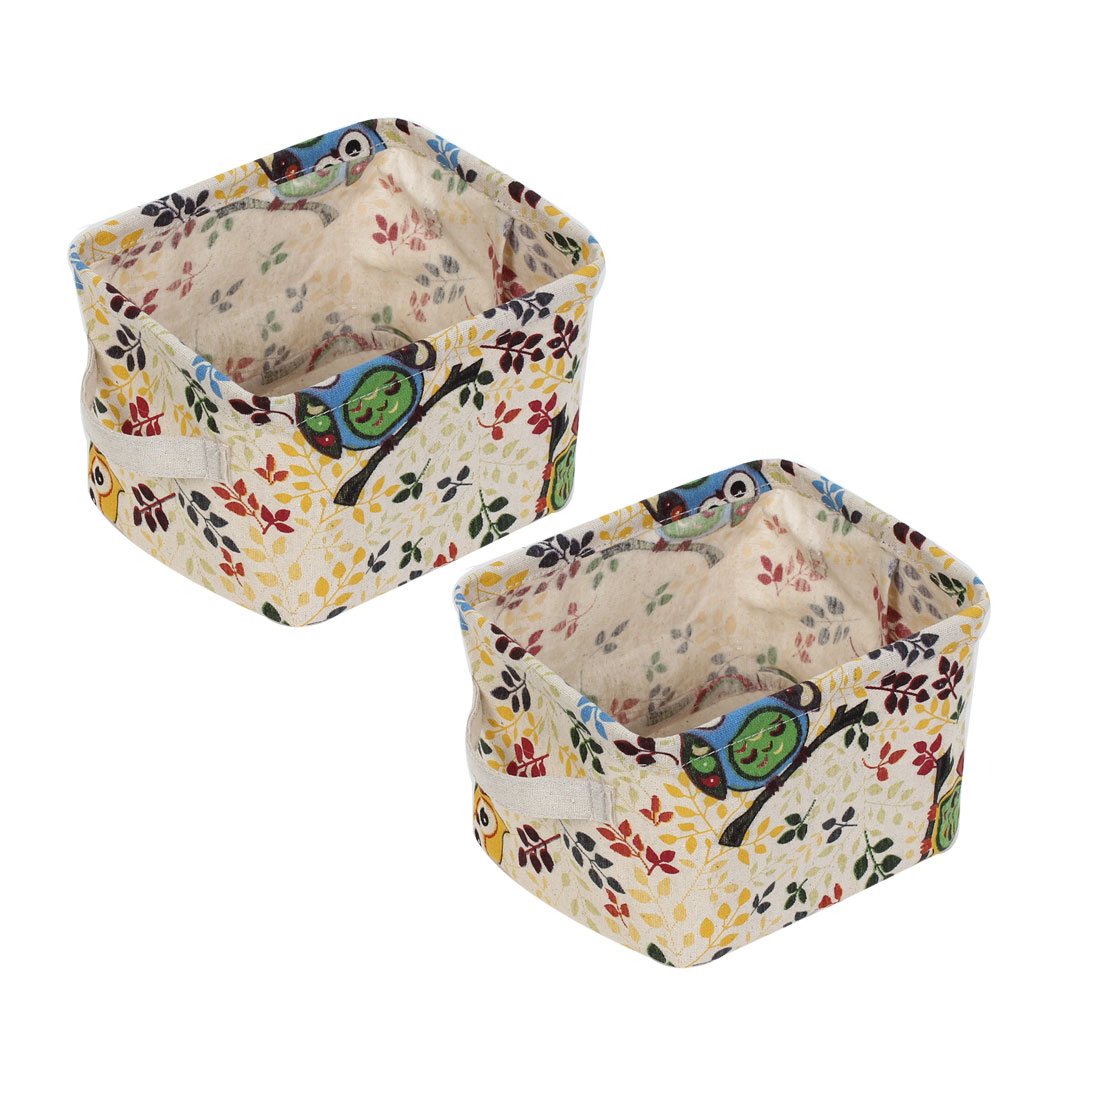 Owl Printed Rectangle Shaped Storage Basket Bucket 2pcs